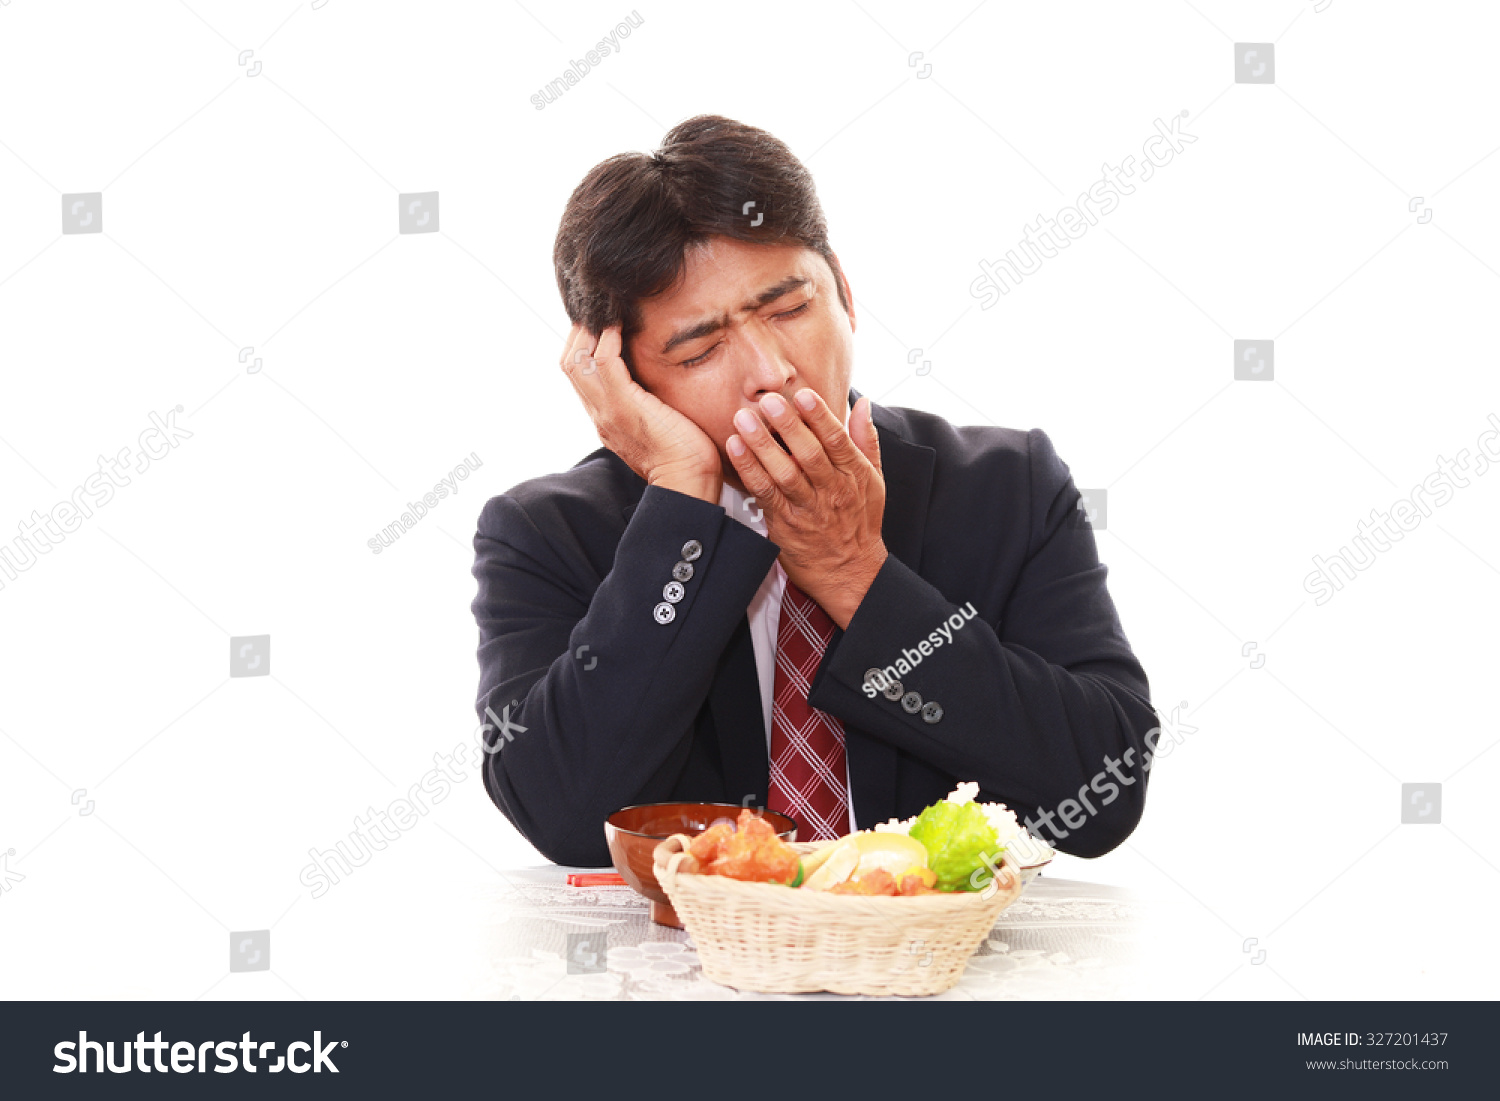 the appetite of man Stages of appetite suppression in man d a booth, aileen chase and a t  campbell laboratory ~f lvperimcntal p,~3'chology, school of biological.